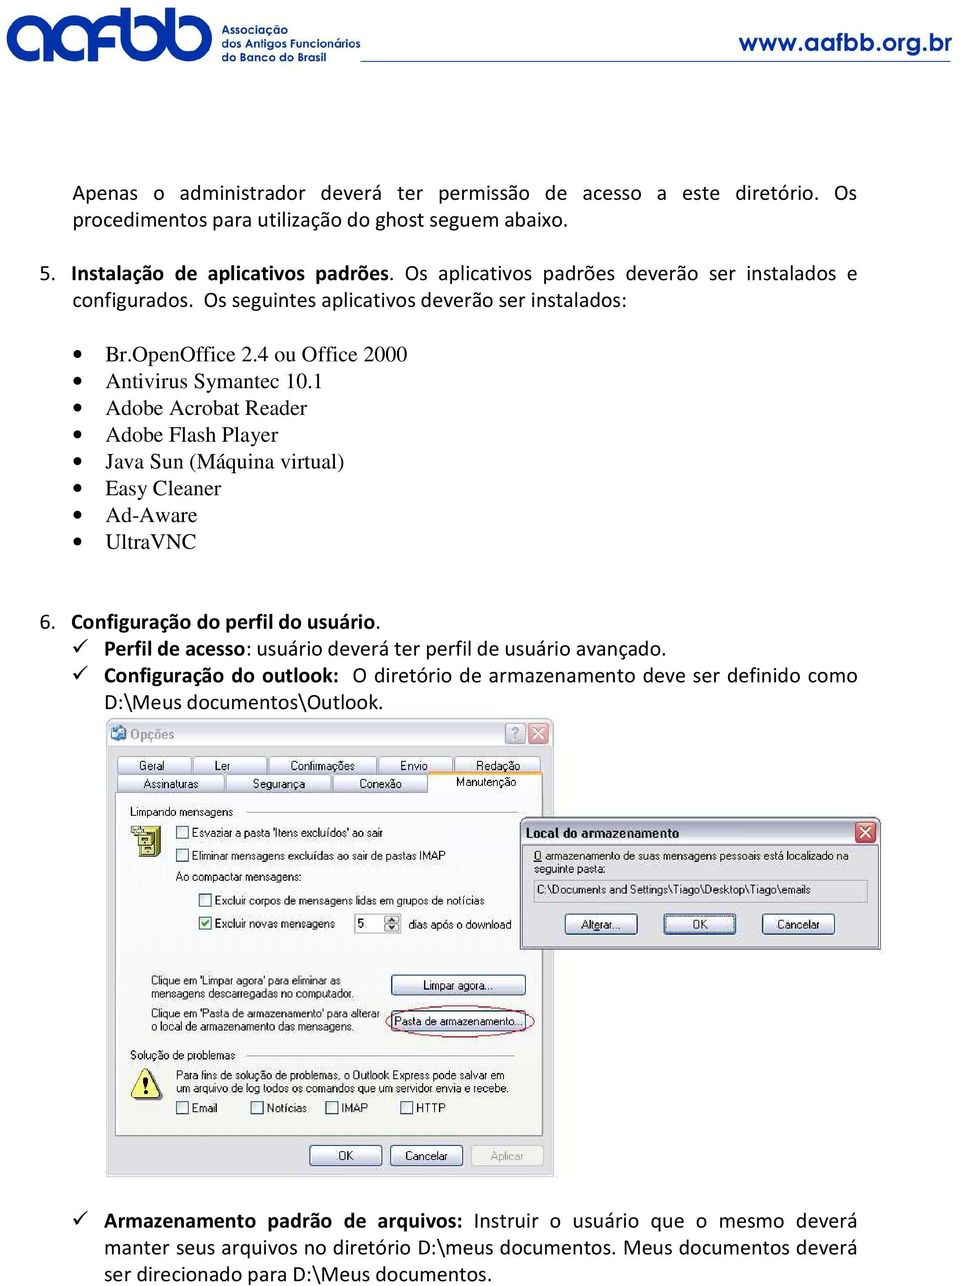 1 Adobe Acrobat Reader Adobe Flash Player Java Sun (Máquina virtual) Easy Cleaner Ad-Aware UltraVNC 6. Configuração do perfil do usuário.